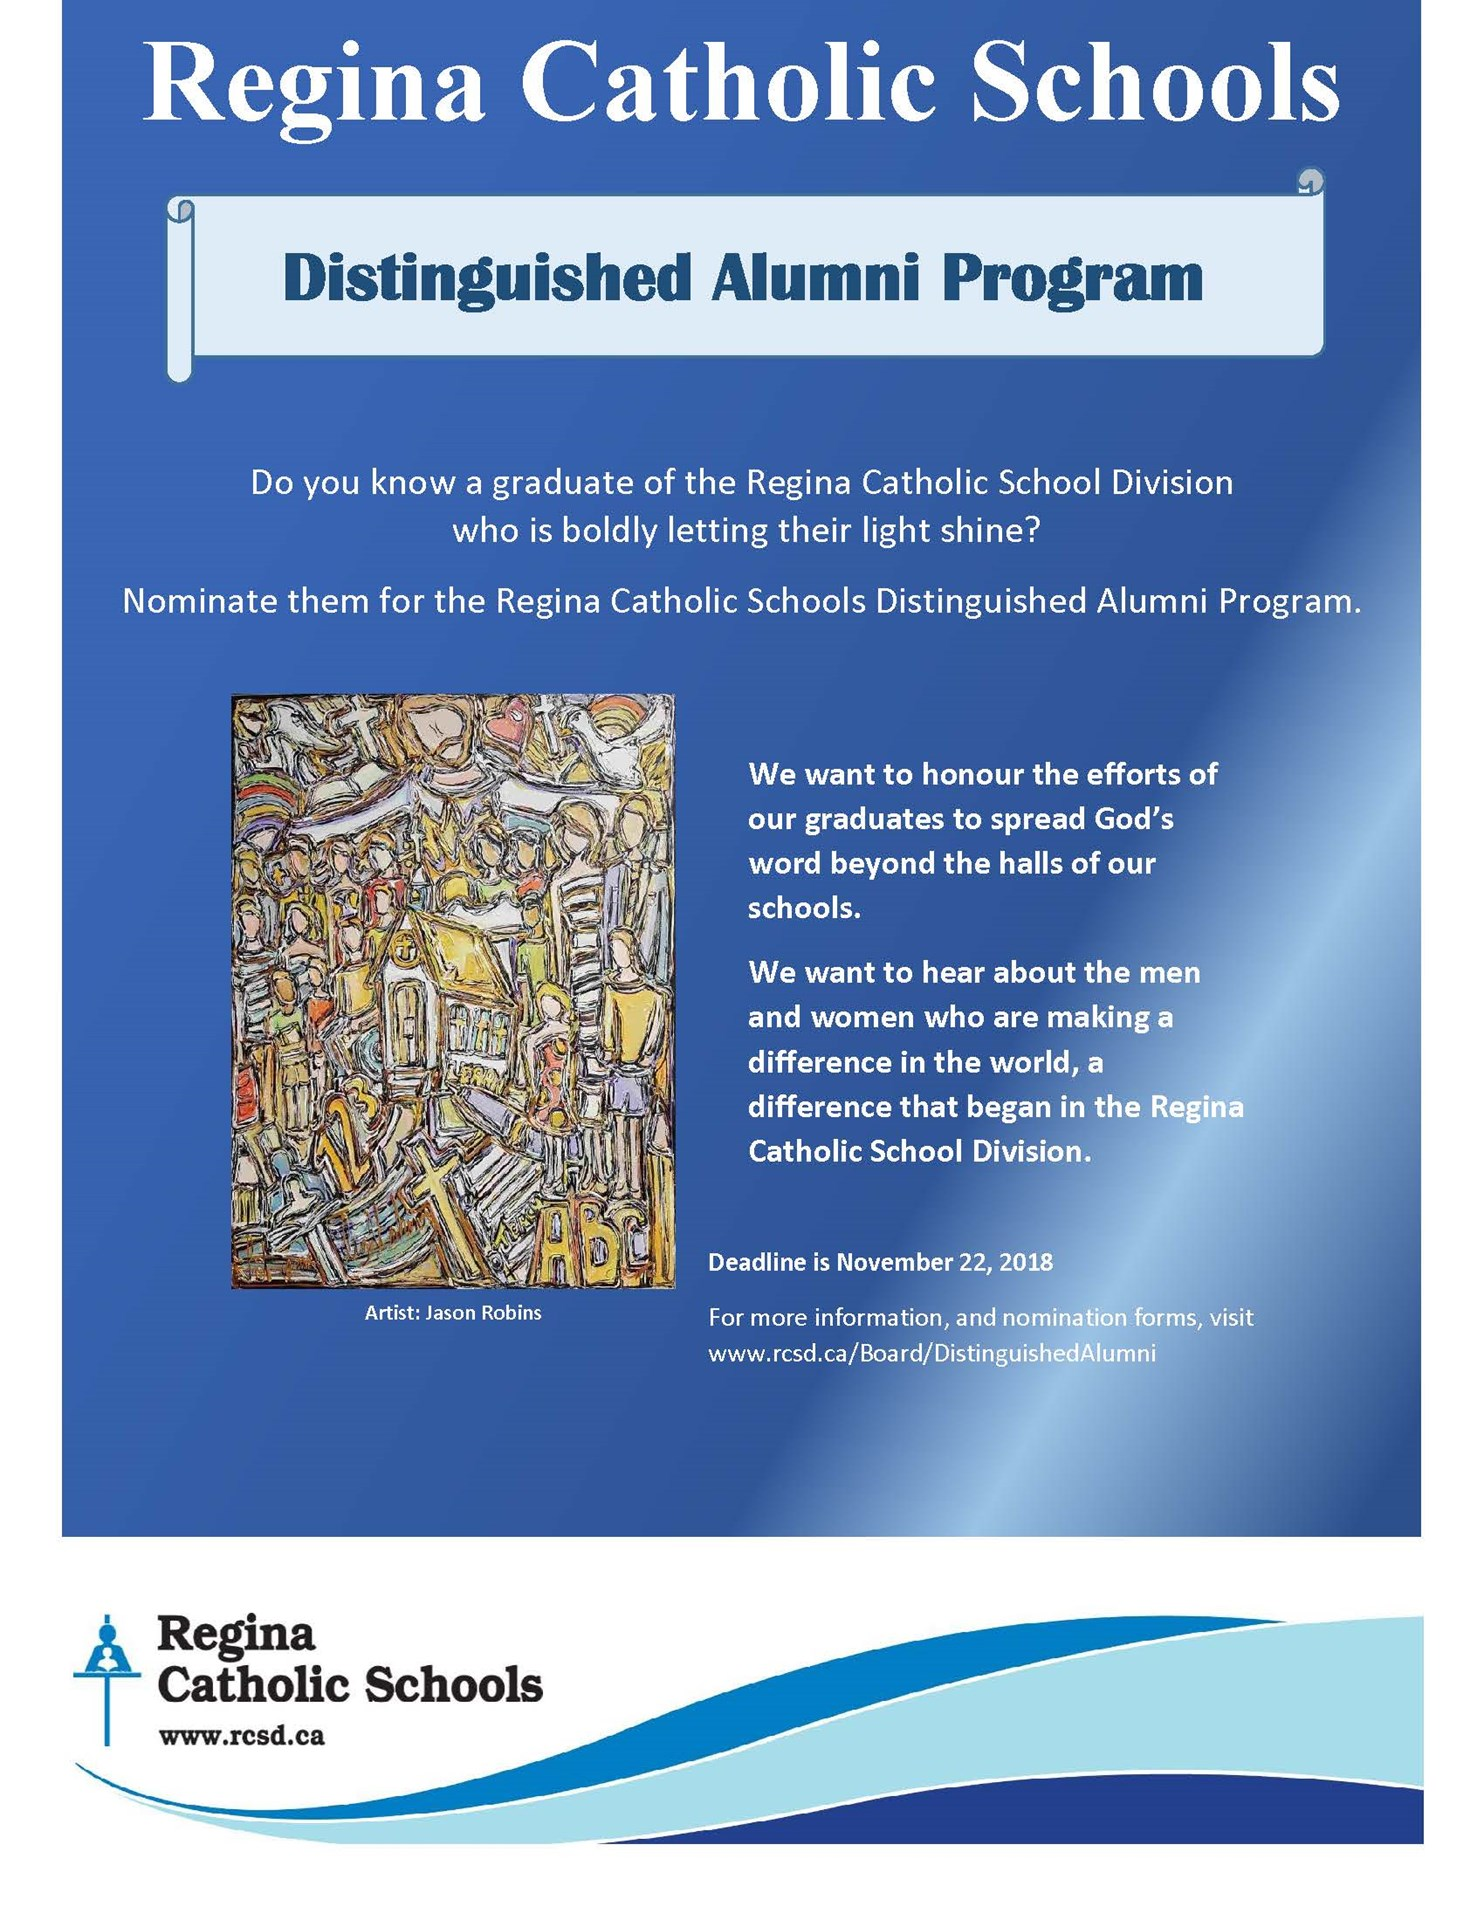 Distinguished alumni program poster.jpg